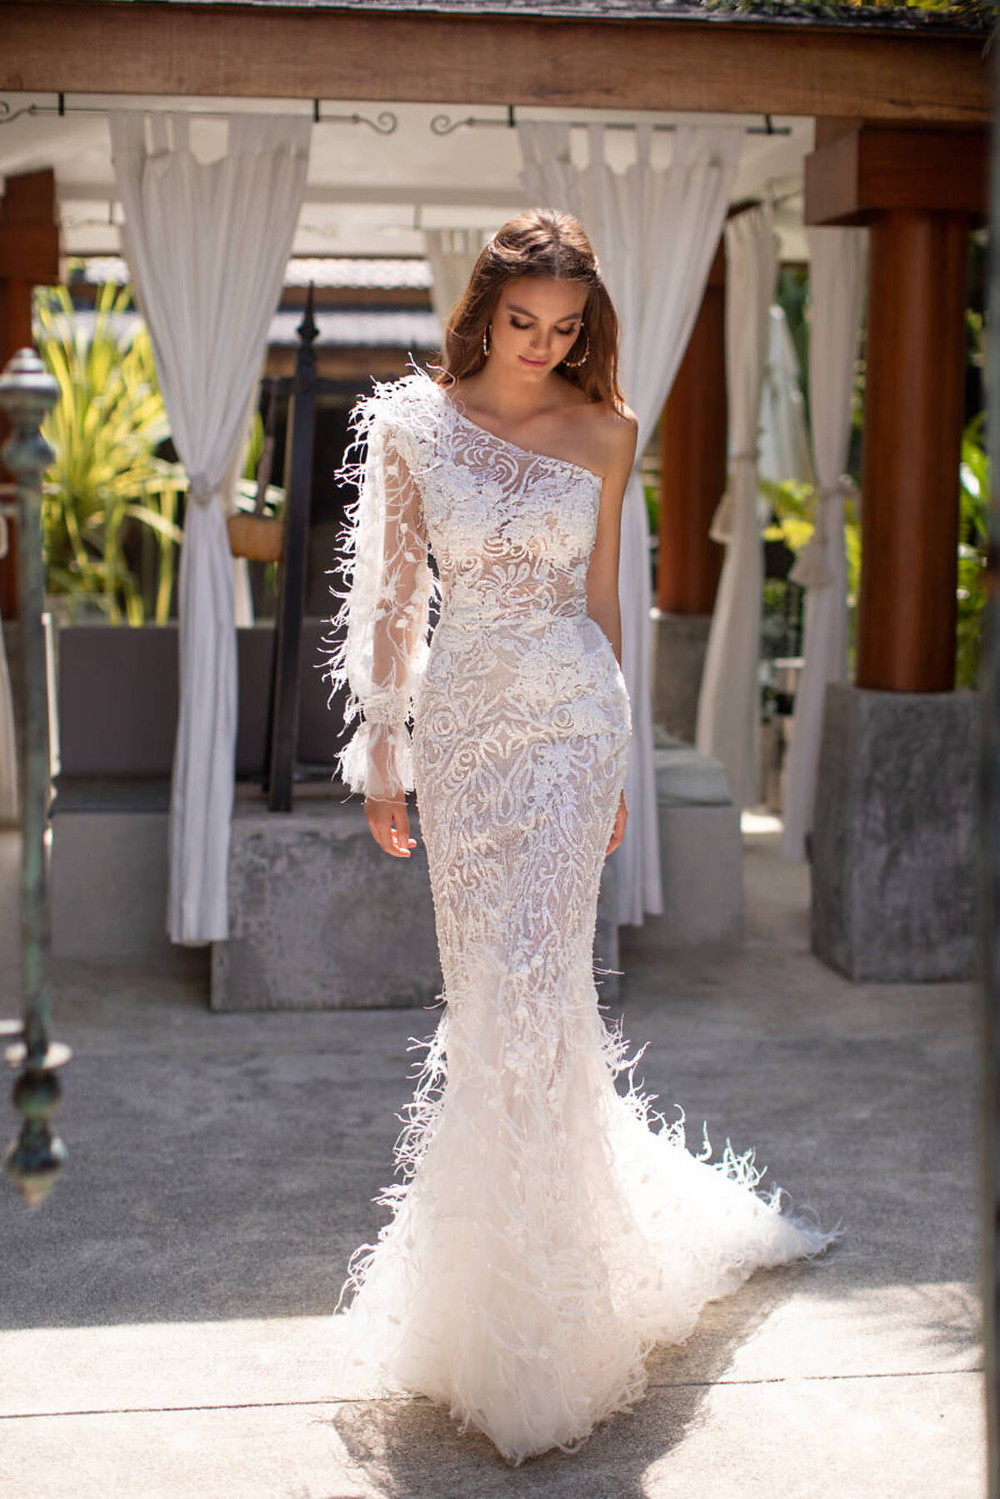 A Milla Nova one shoulder mermaid wedding dress with feathers and a floral print